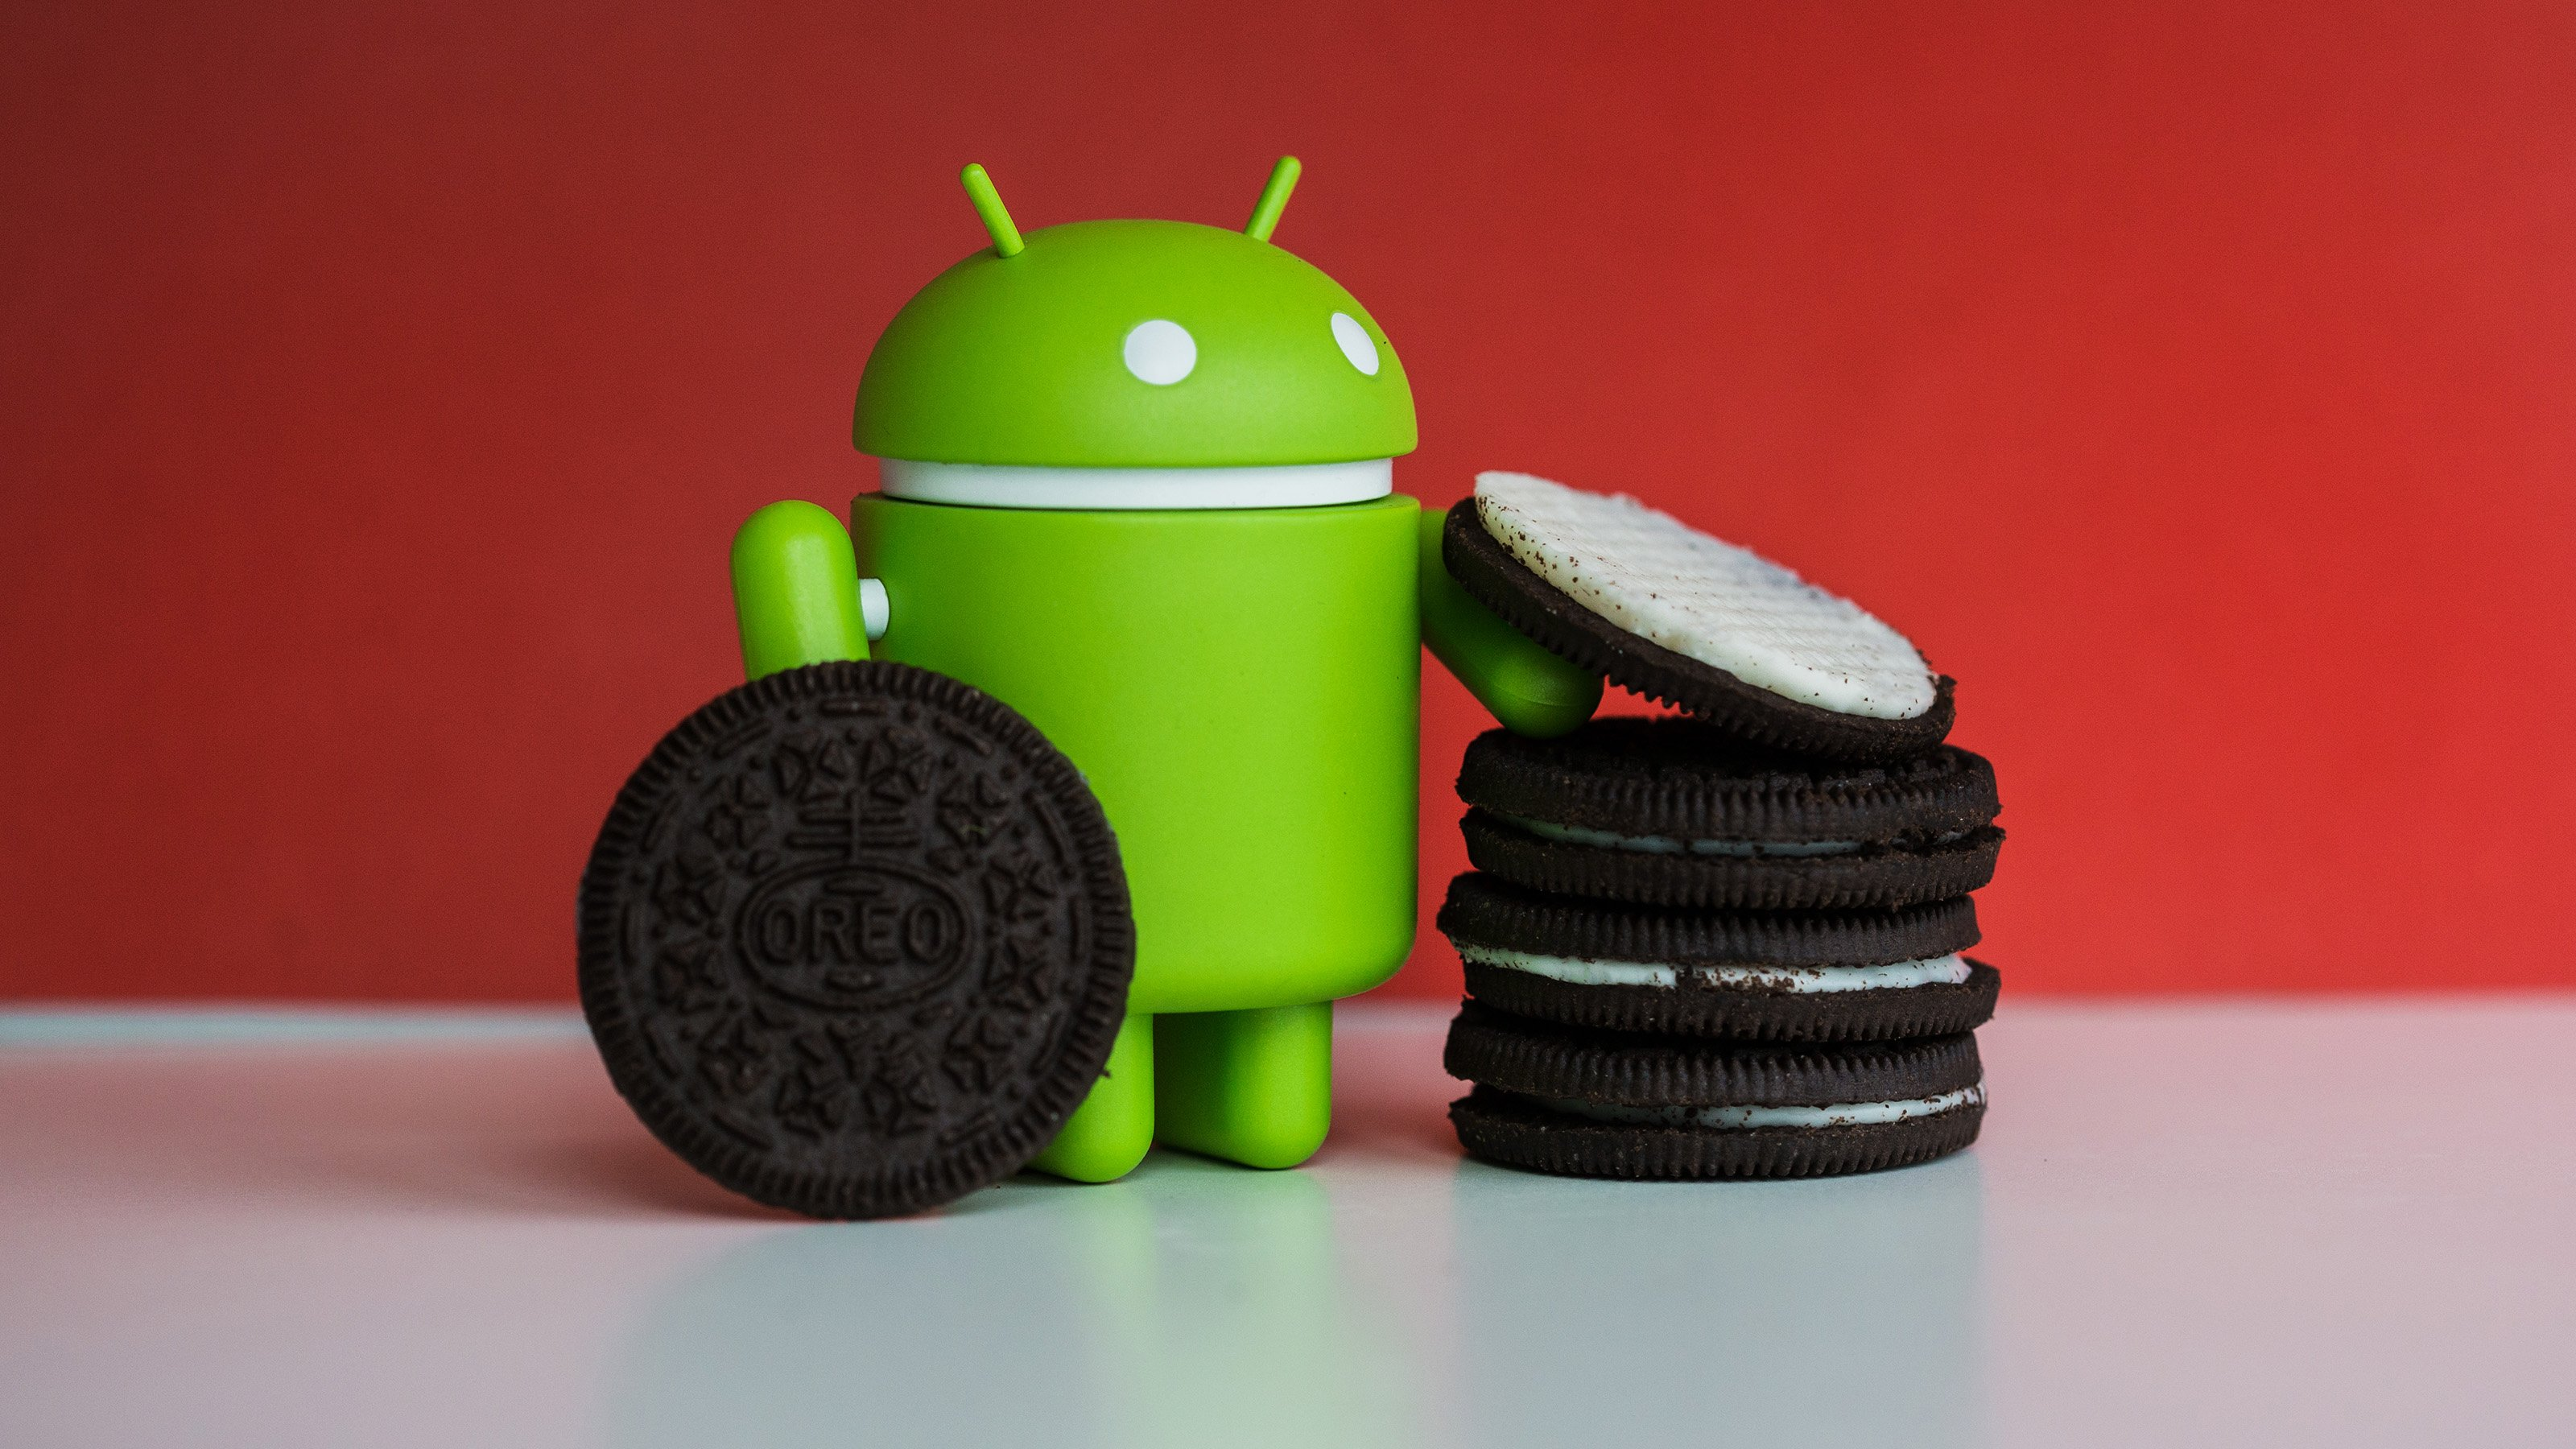 Cool New Features in Android 8.0 Oreo